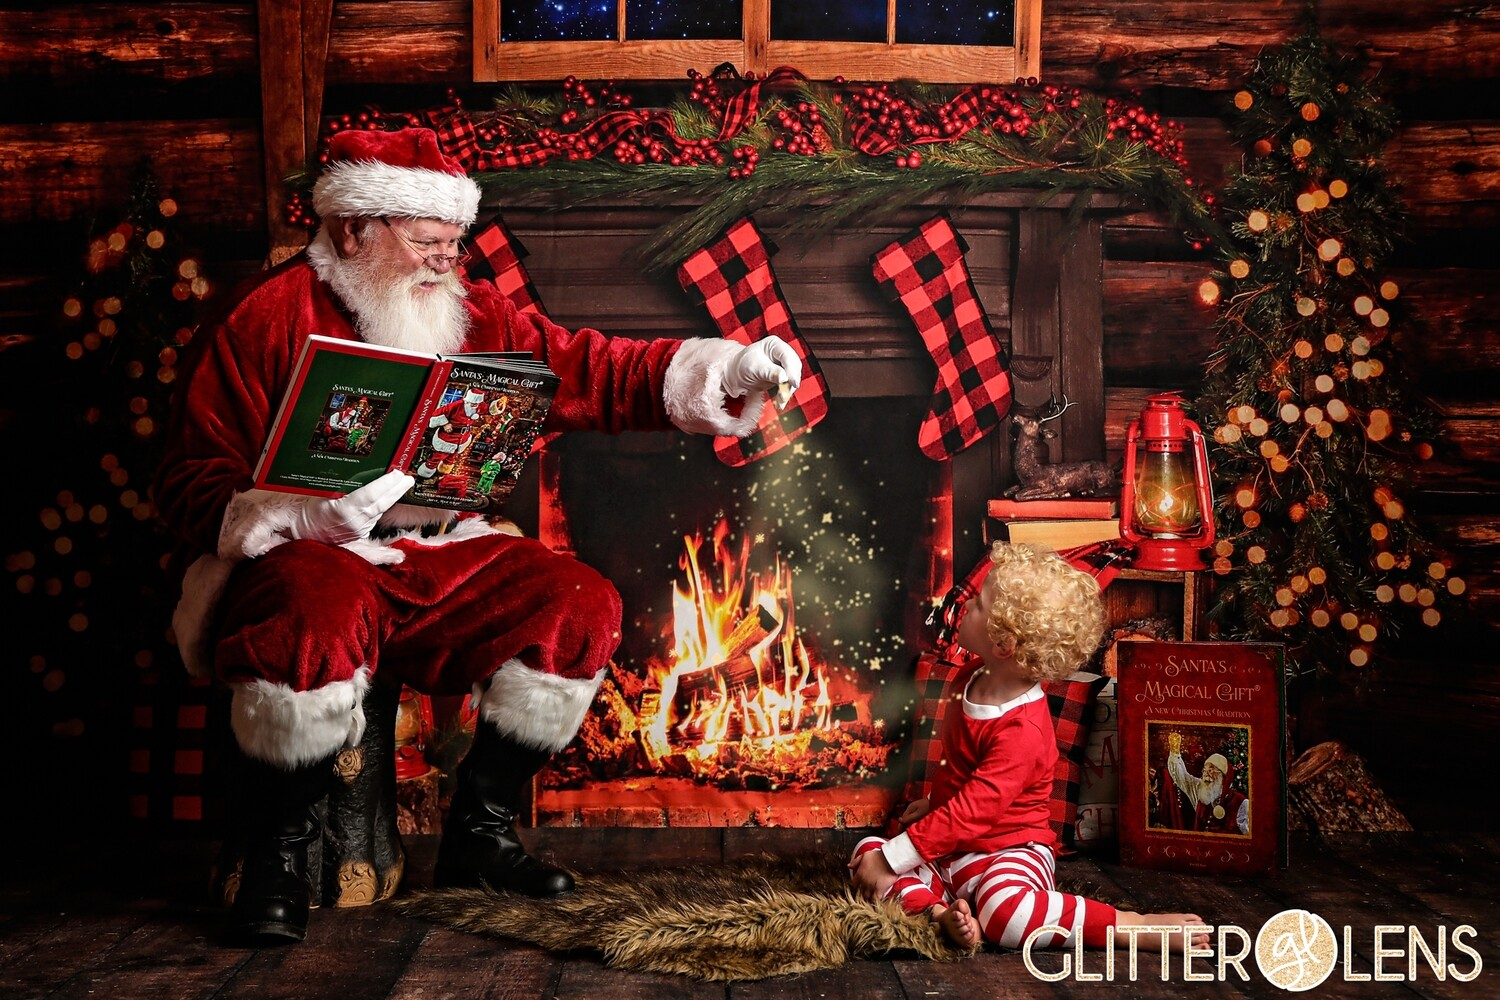 *MORE TIMES ADDED** Cozy Cabin with Santa -   -  - November 21, 2020